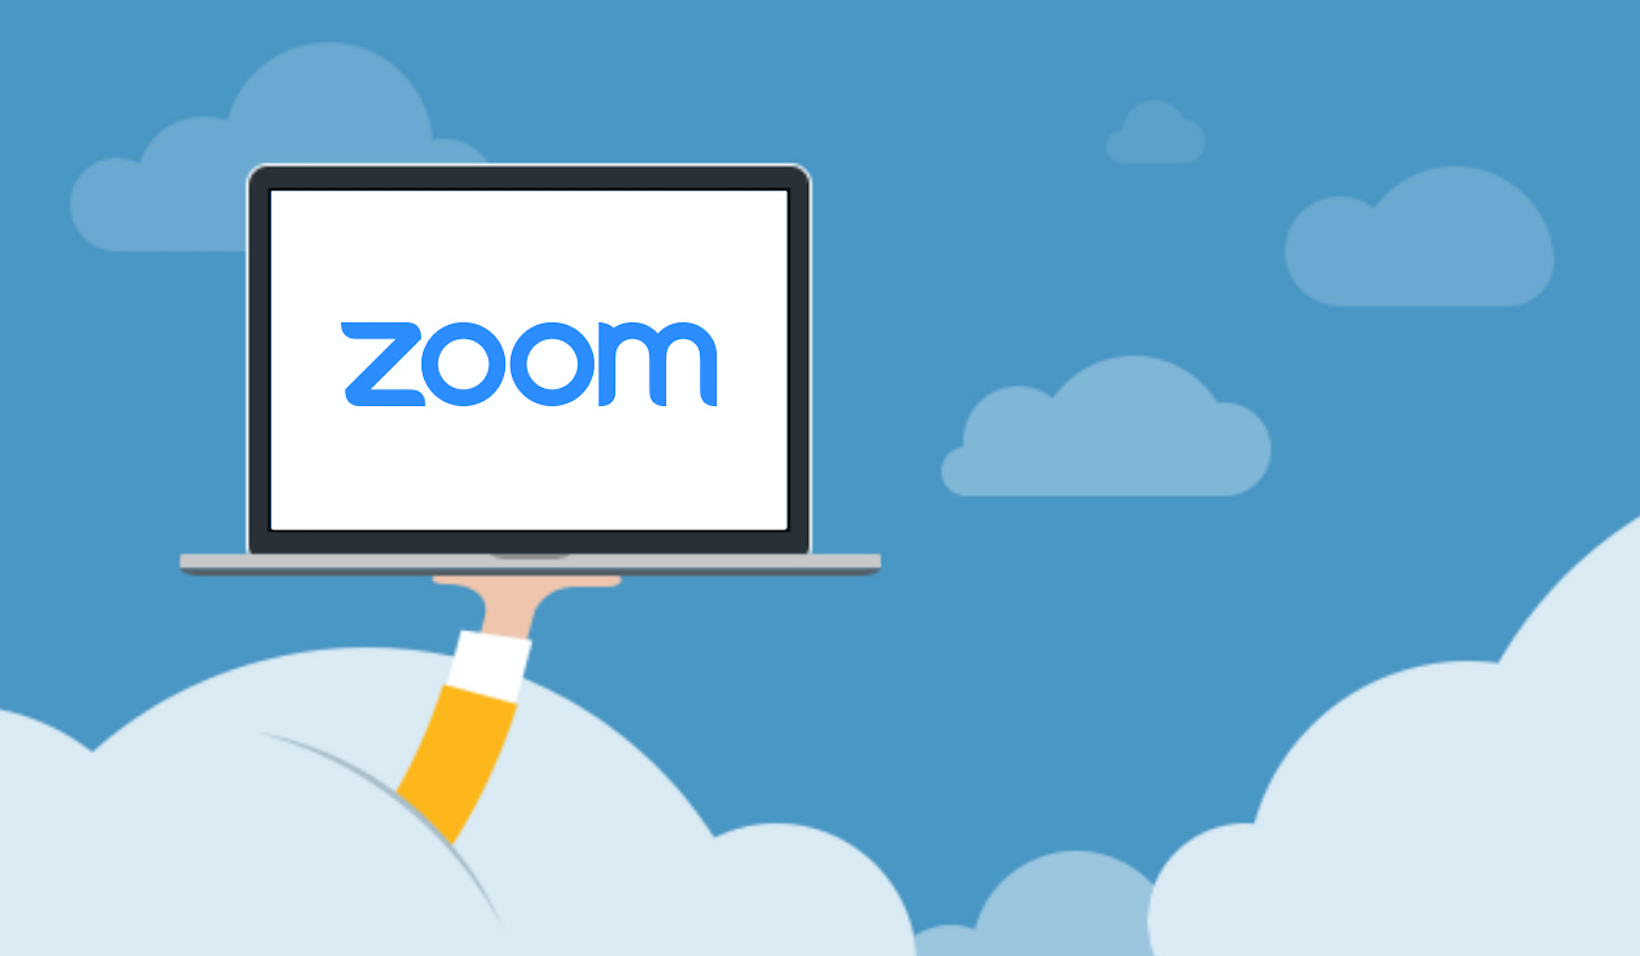 The videoconferencing app Zoom has come under fresh high-level scrutiny as its popularity soars during the coronavirus pandemic.